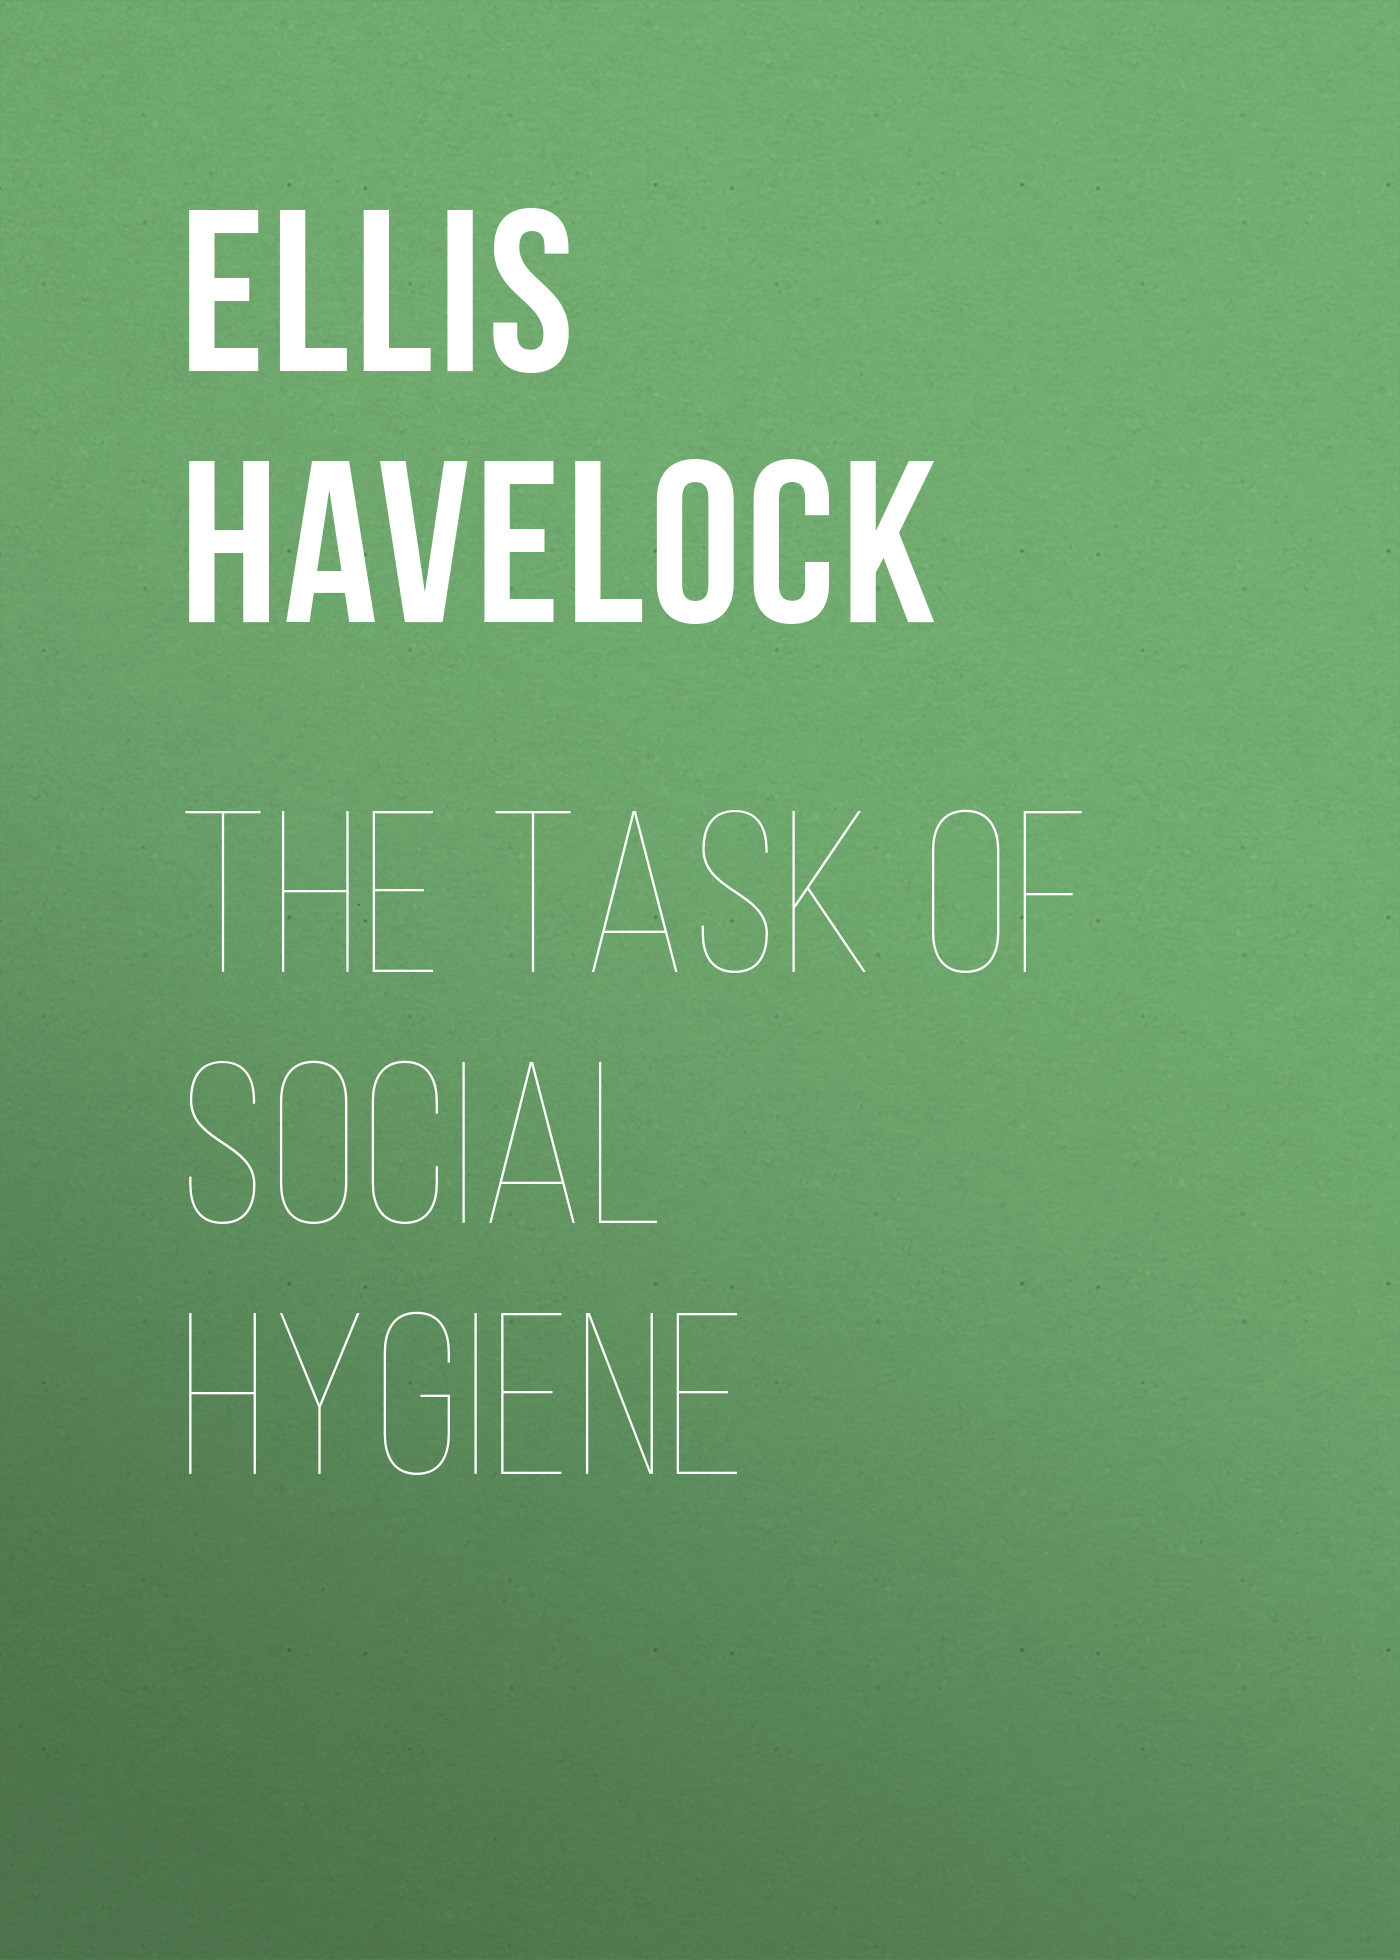 Ellis Havelock The Task of Social Hygiene